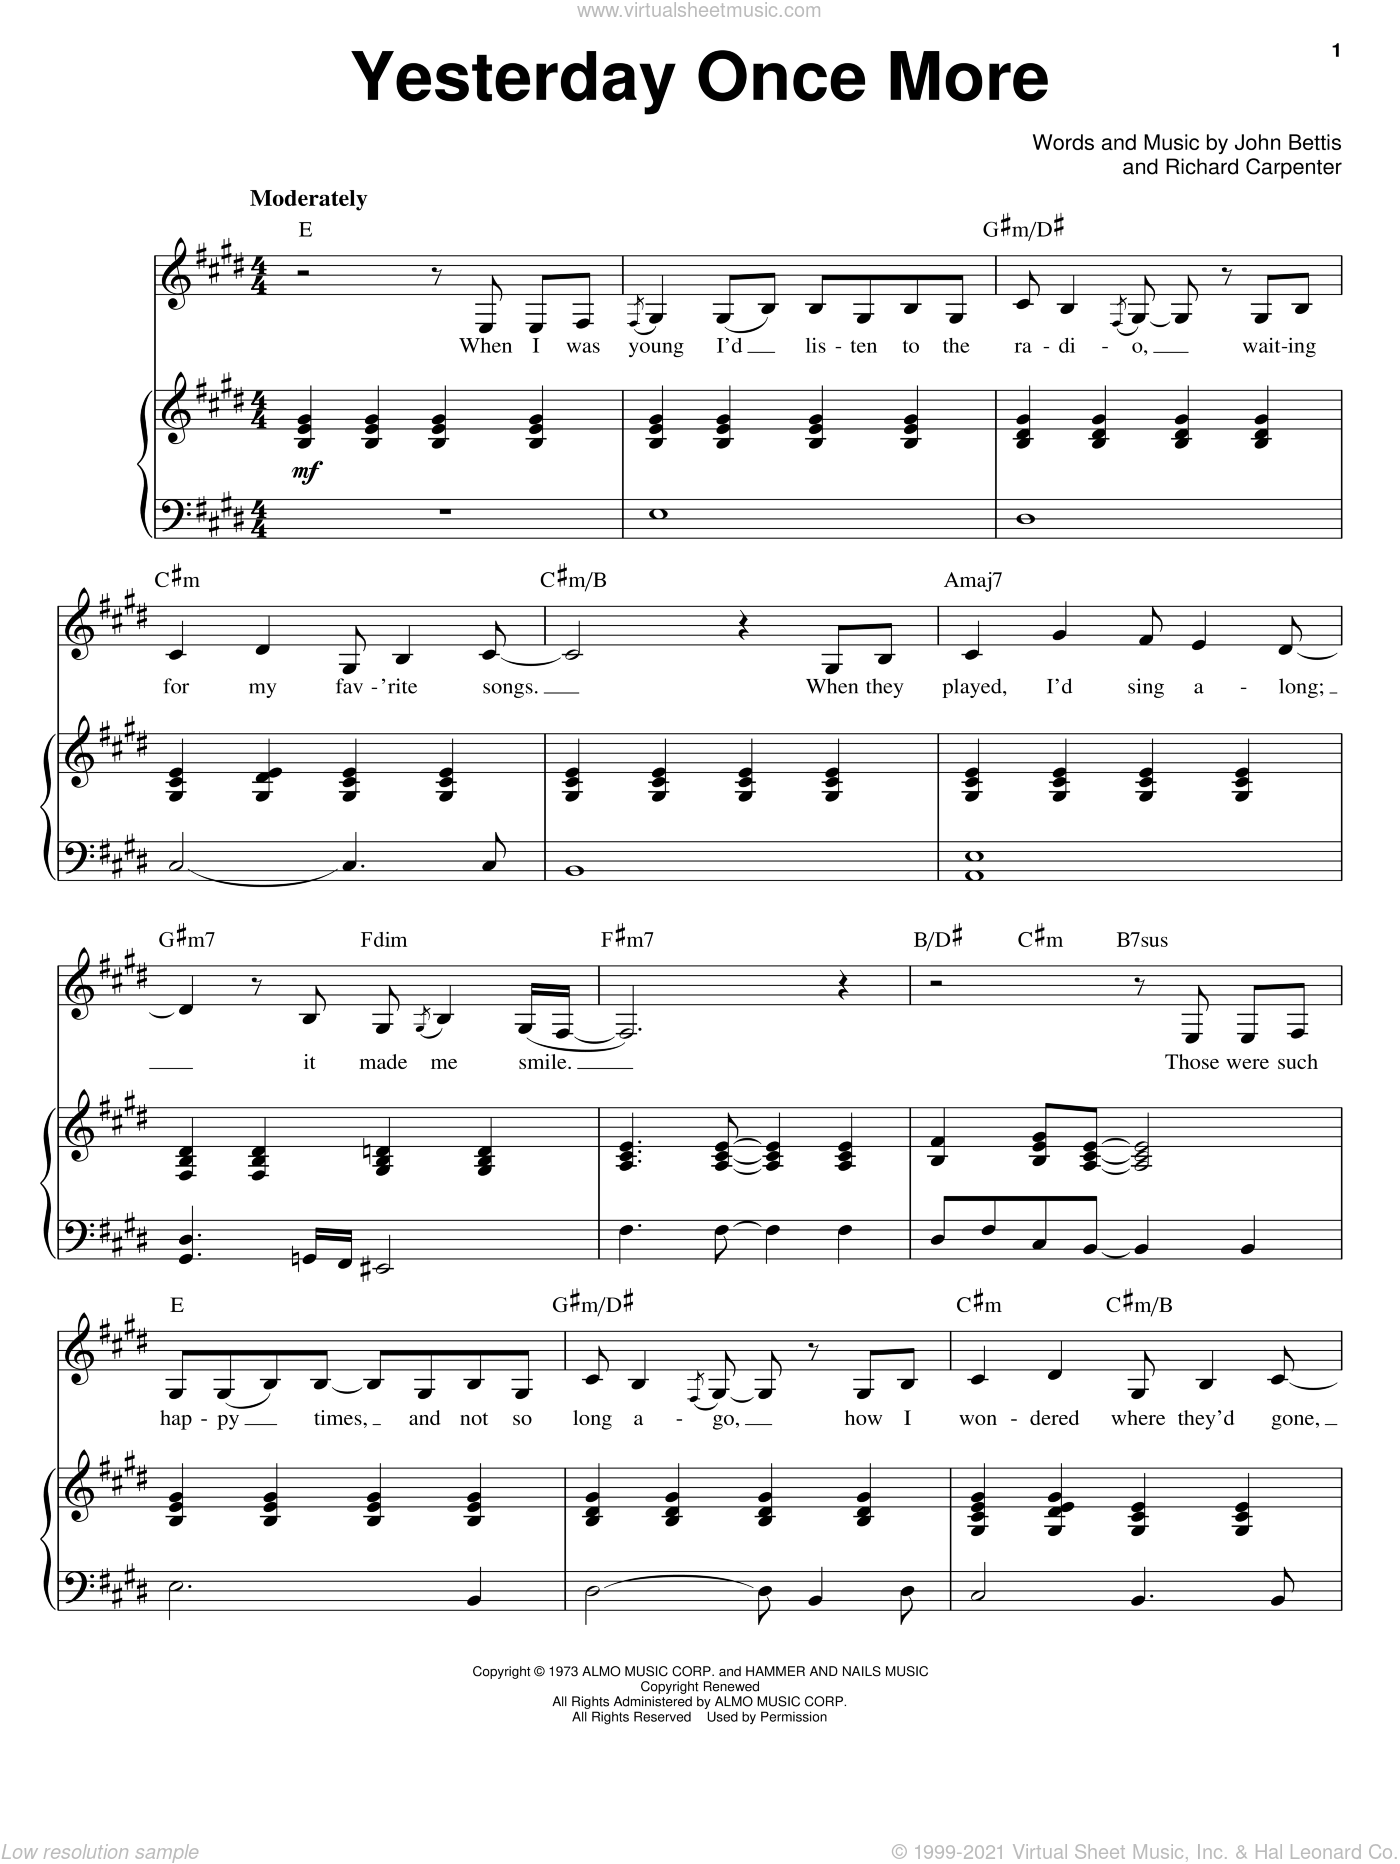 Yesterday Once More sheet music for voice and piano by Richard Carpenter